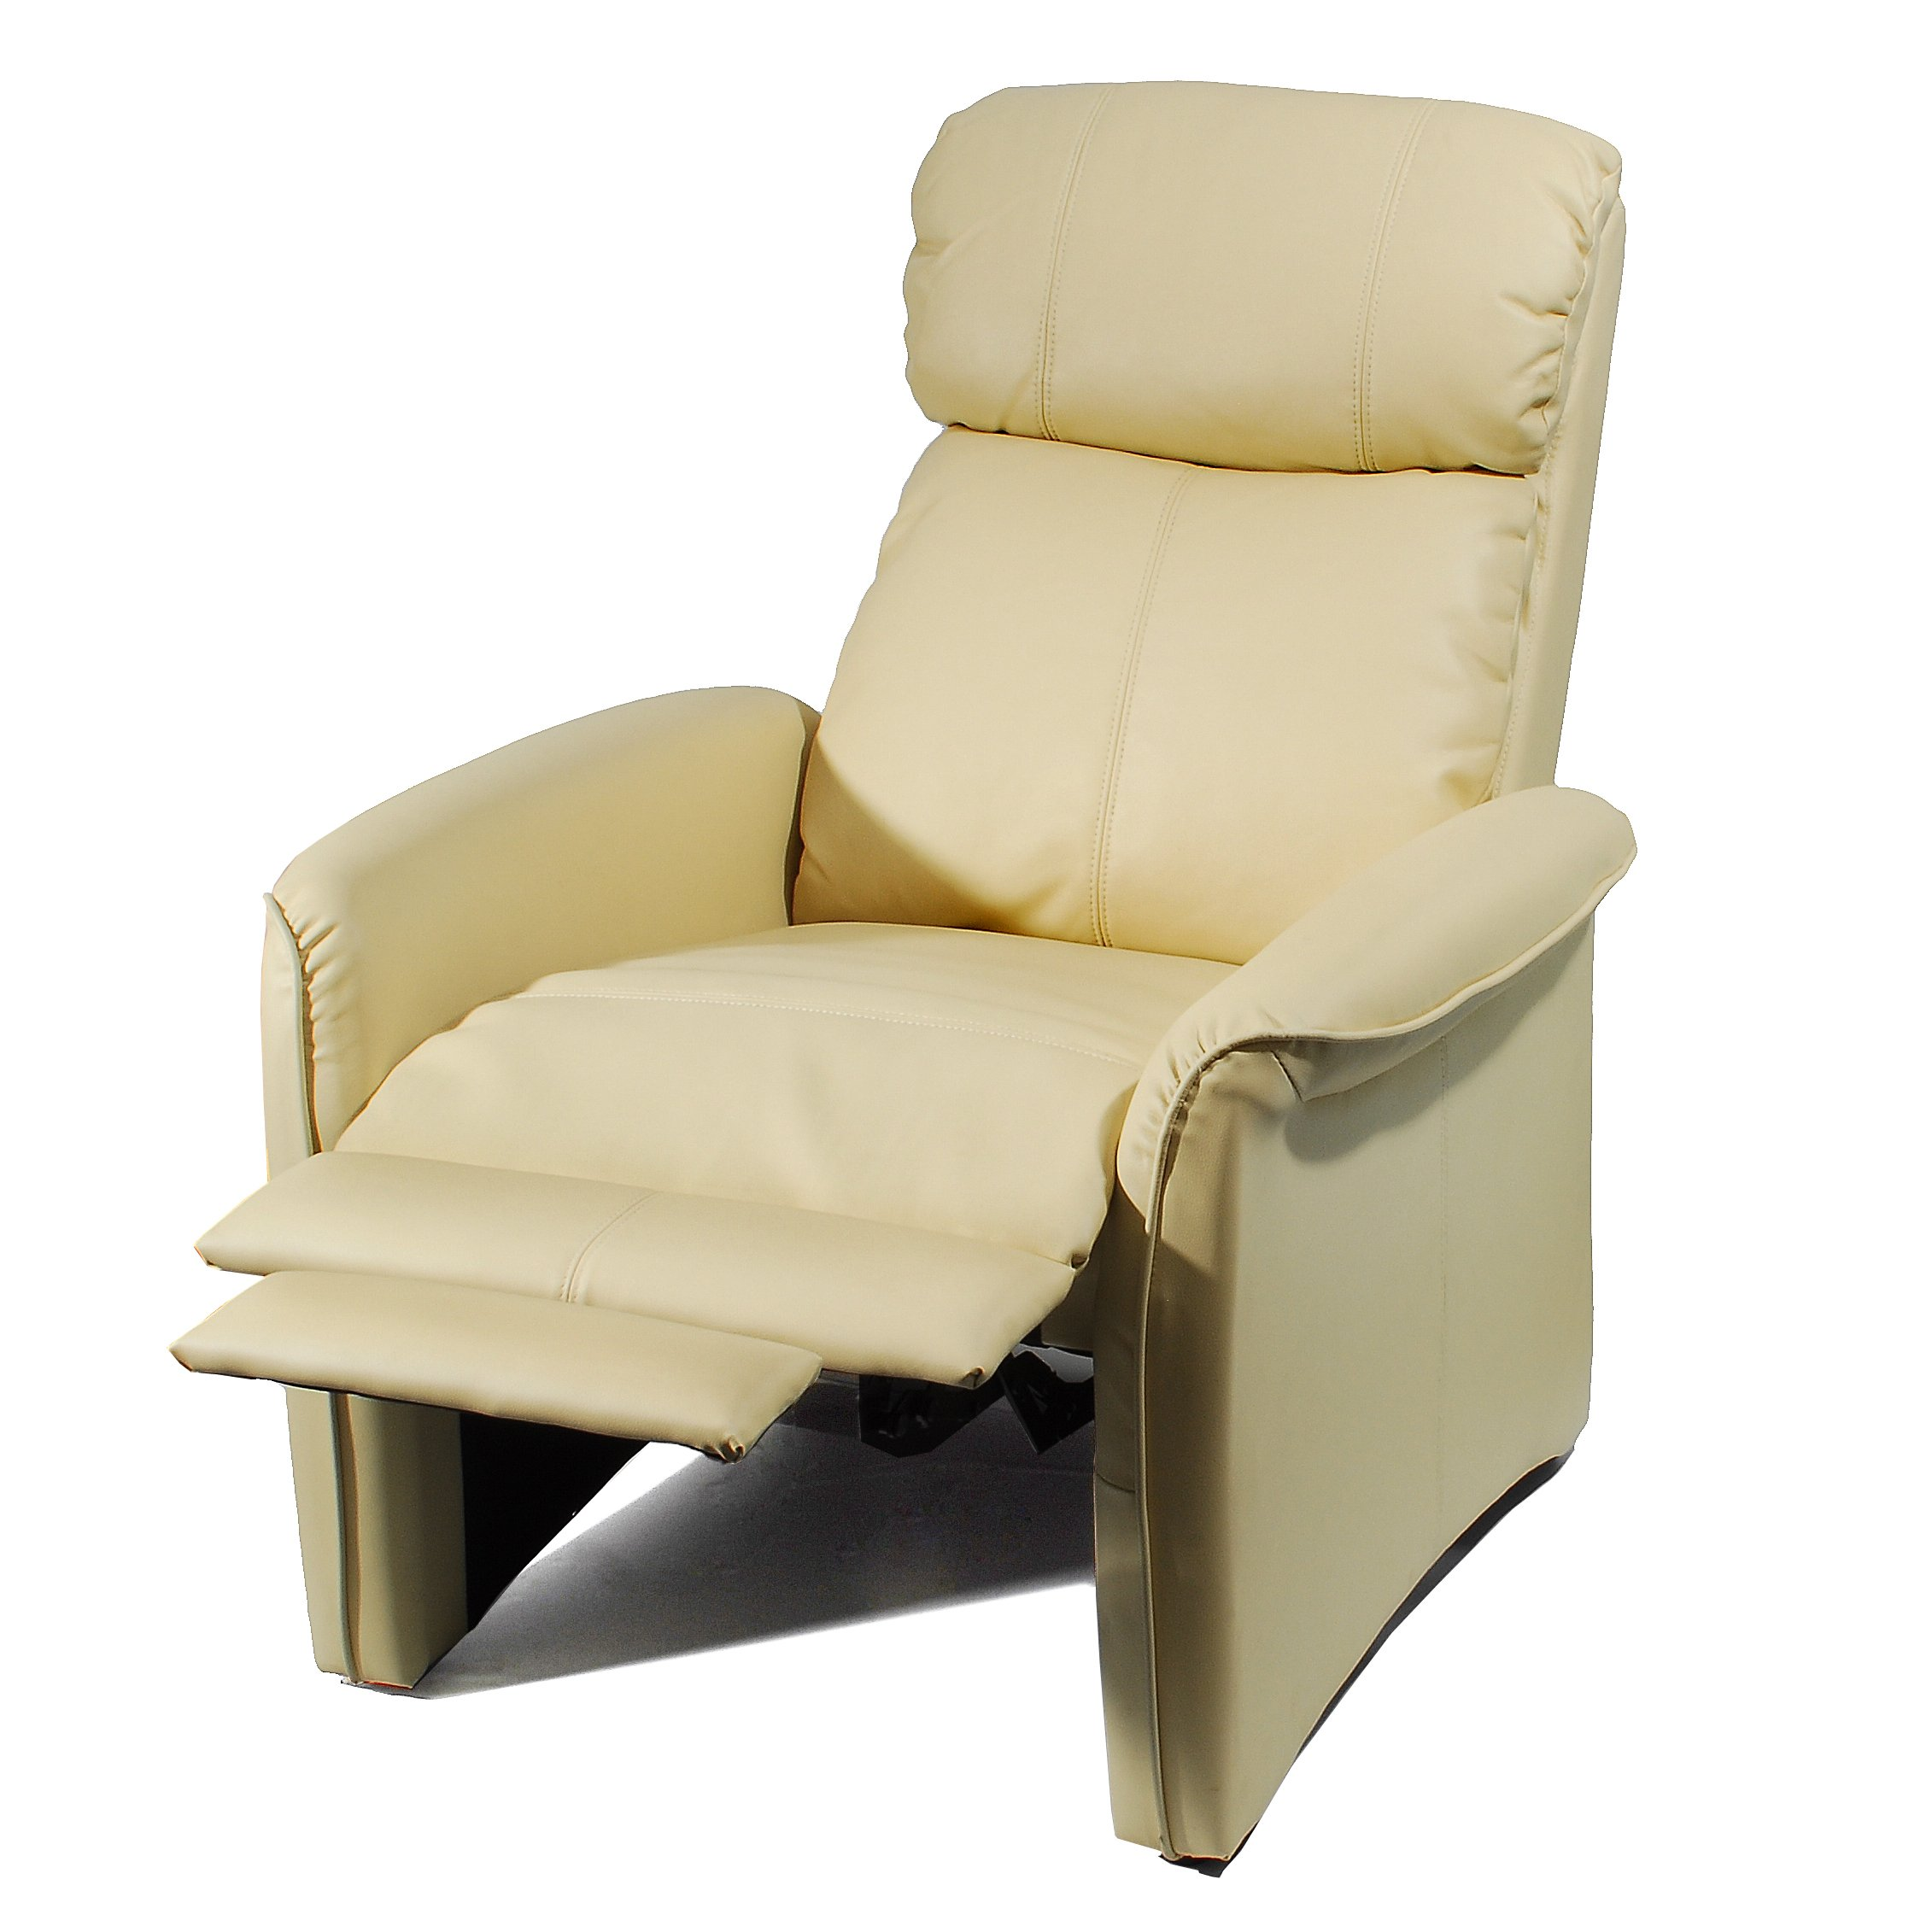 Cozy Chairs Home Leather Soft Pad Recliner 3 Positional Leather Cozy